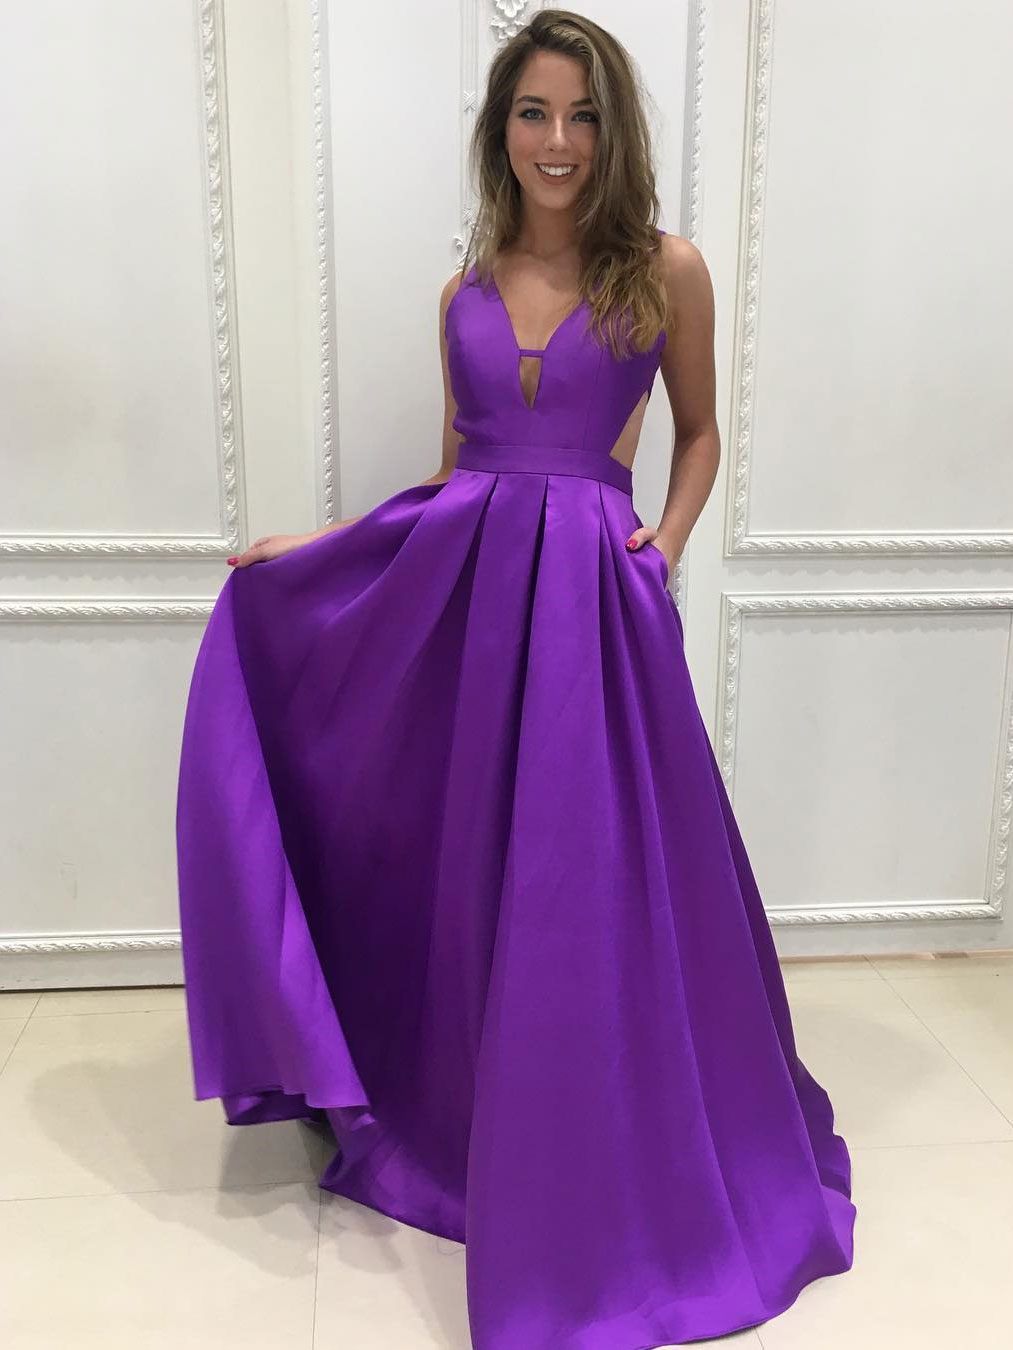 7913941a6794c A-line V-neck Cheap Prom Dresses,Simple Prom Dresses,Long Purple ...